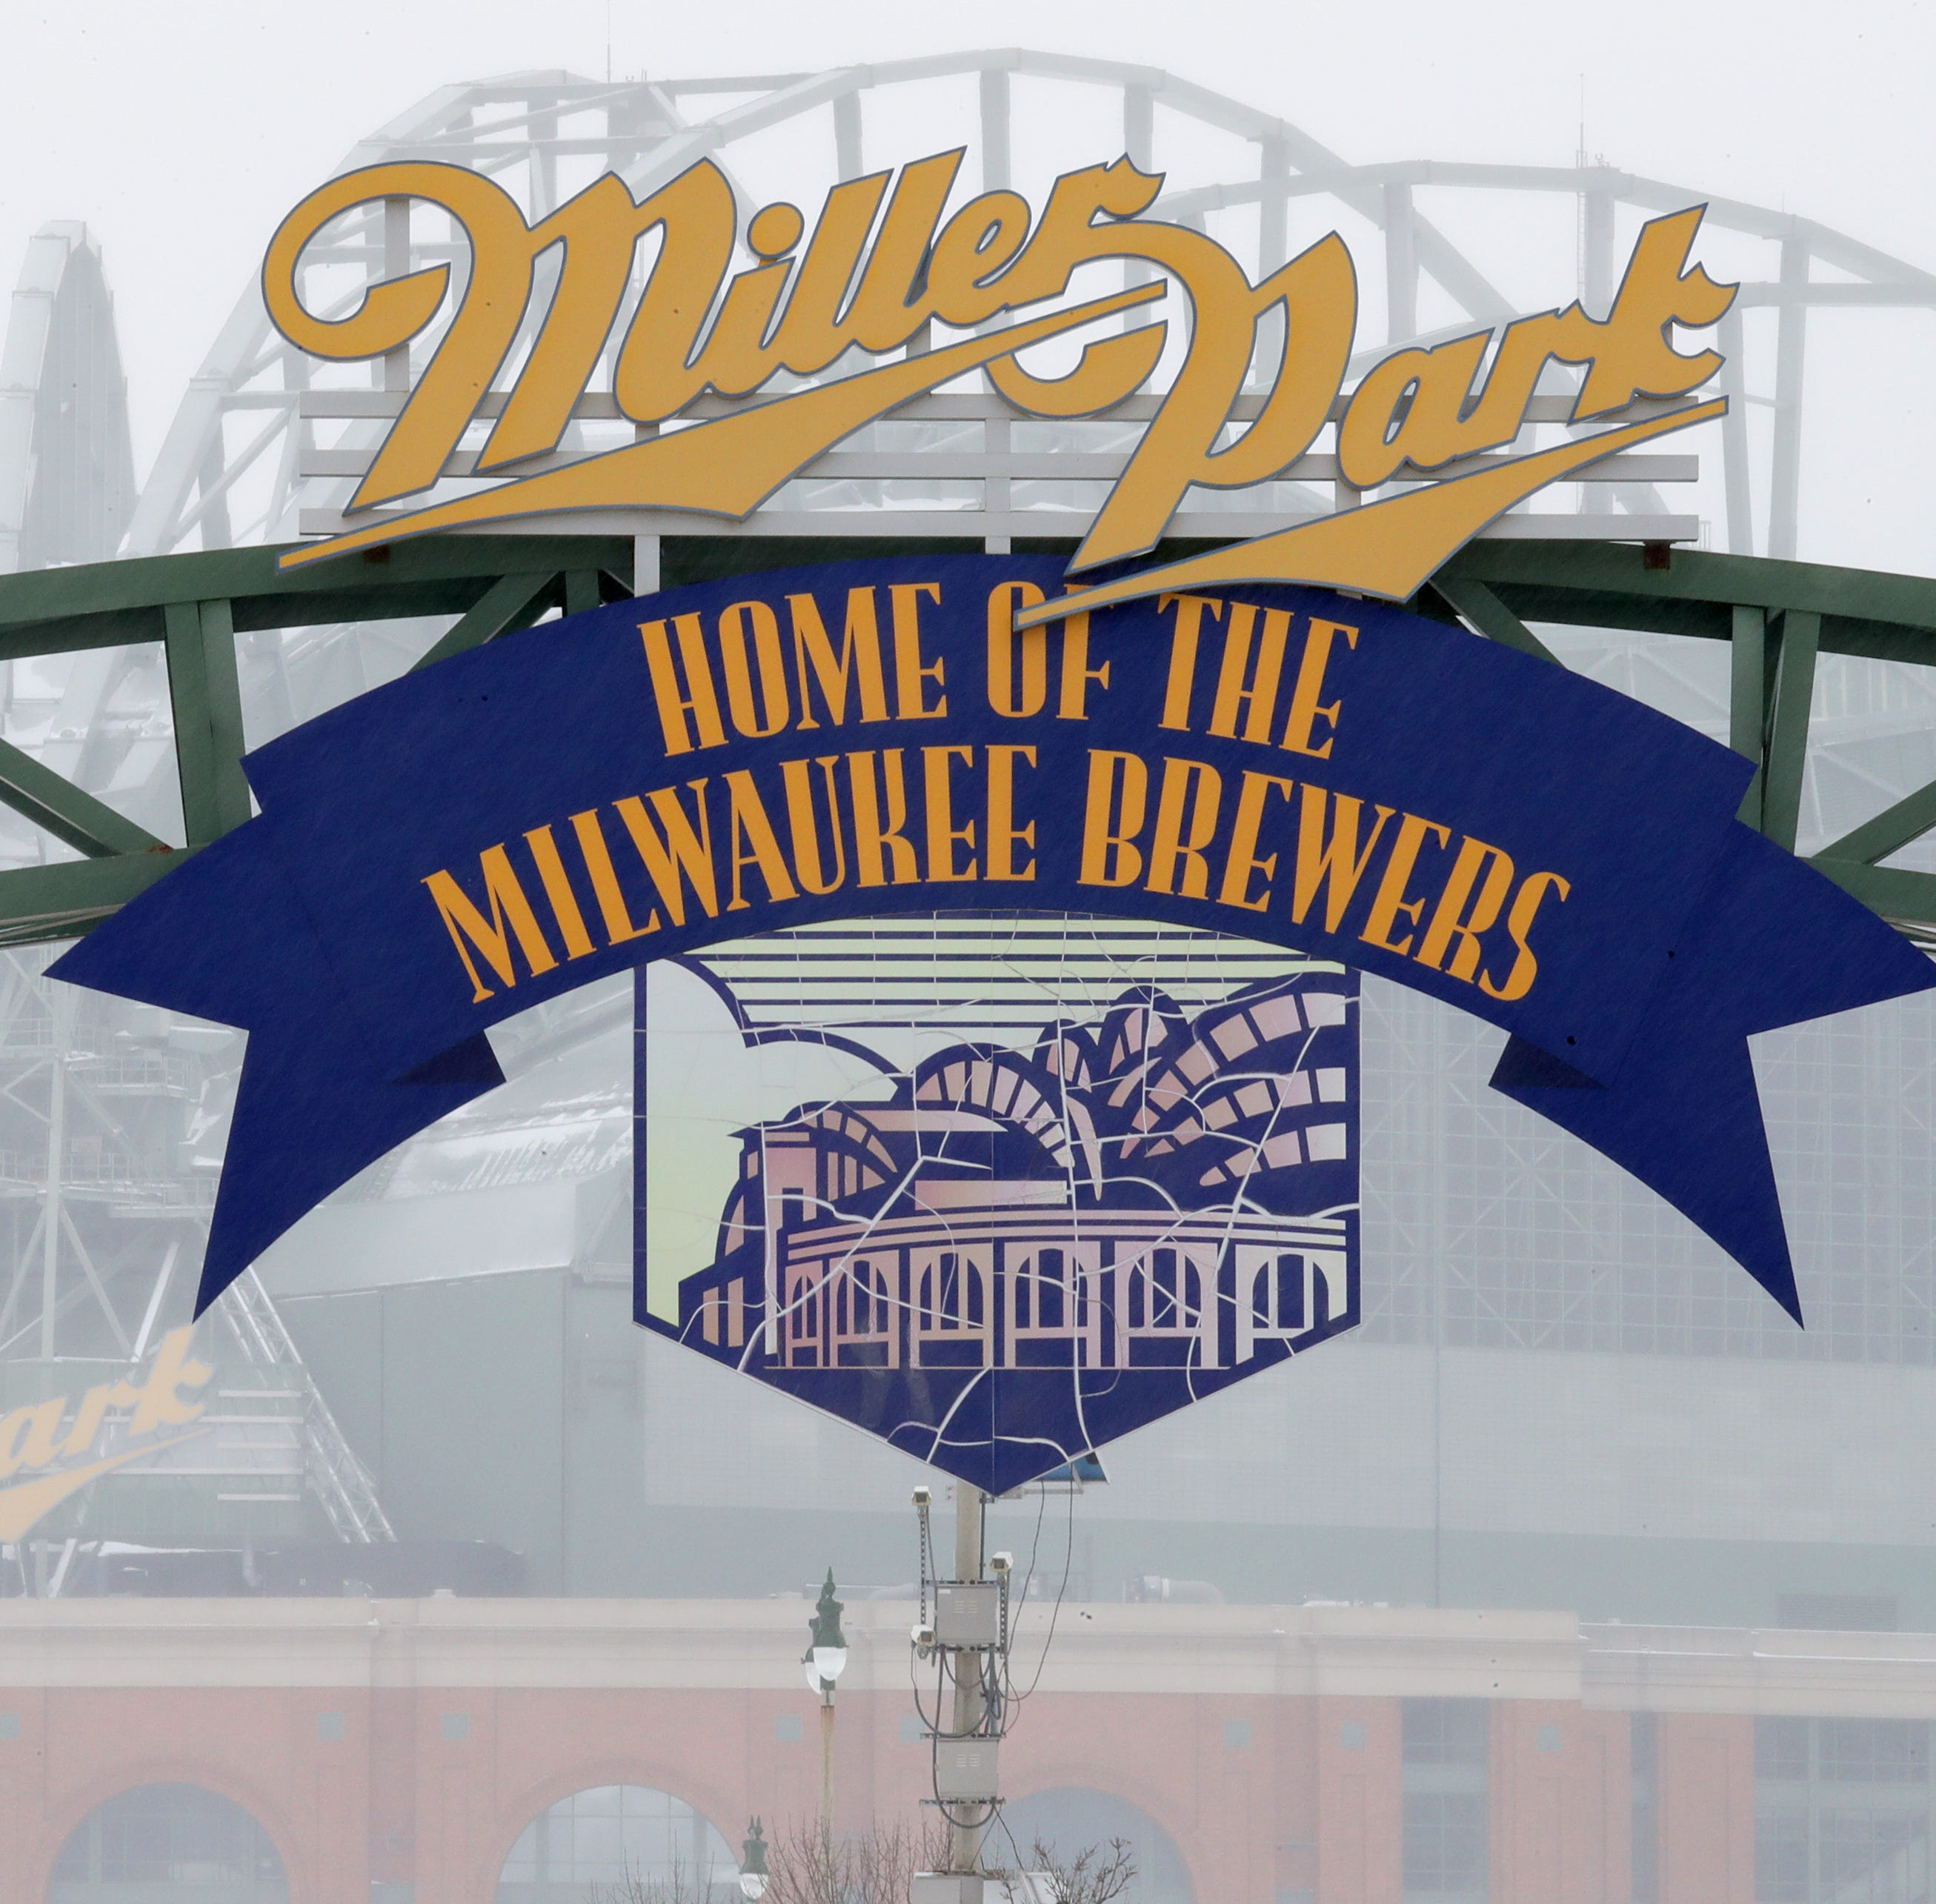 People have set up petitions that oppose changing the name of Miller Park